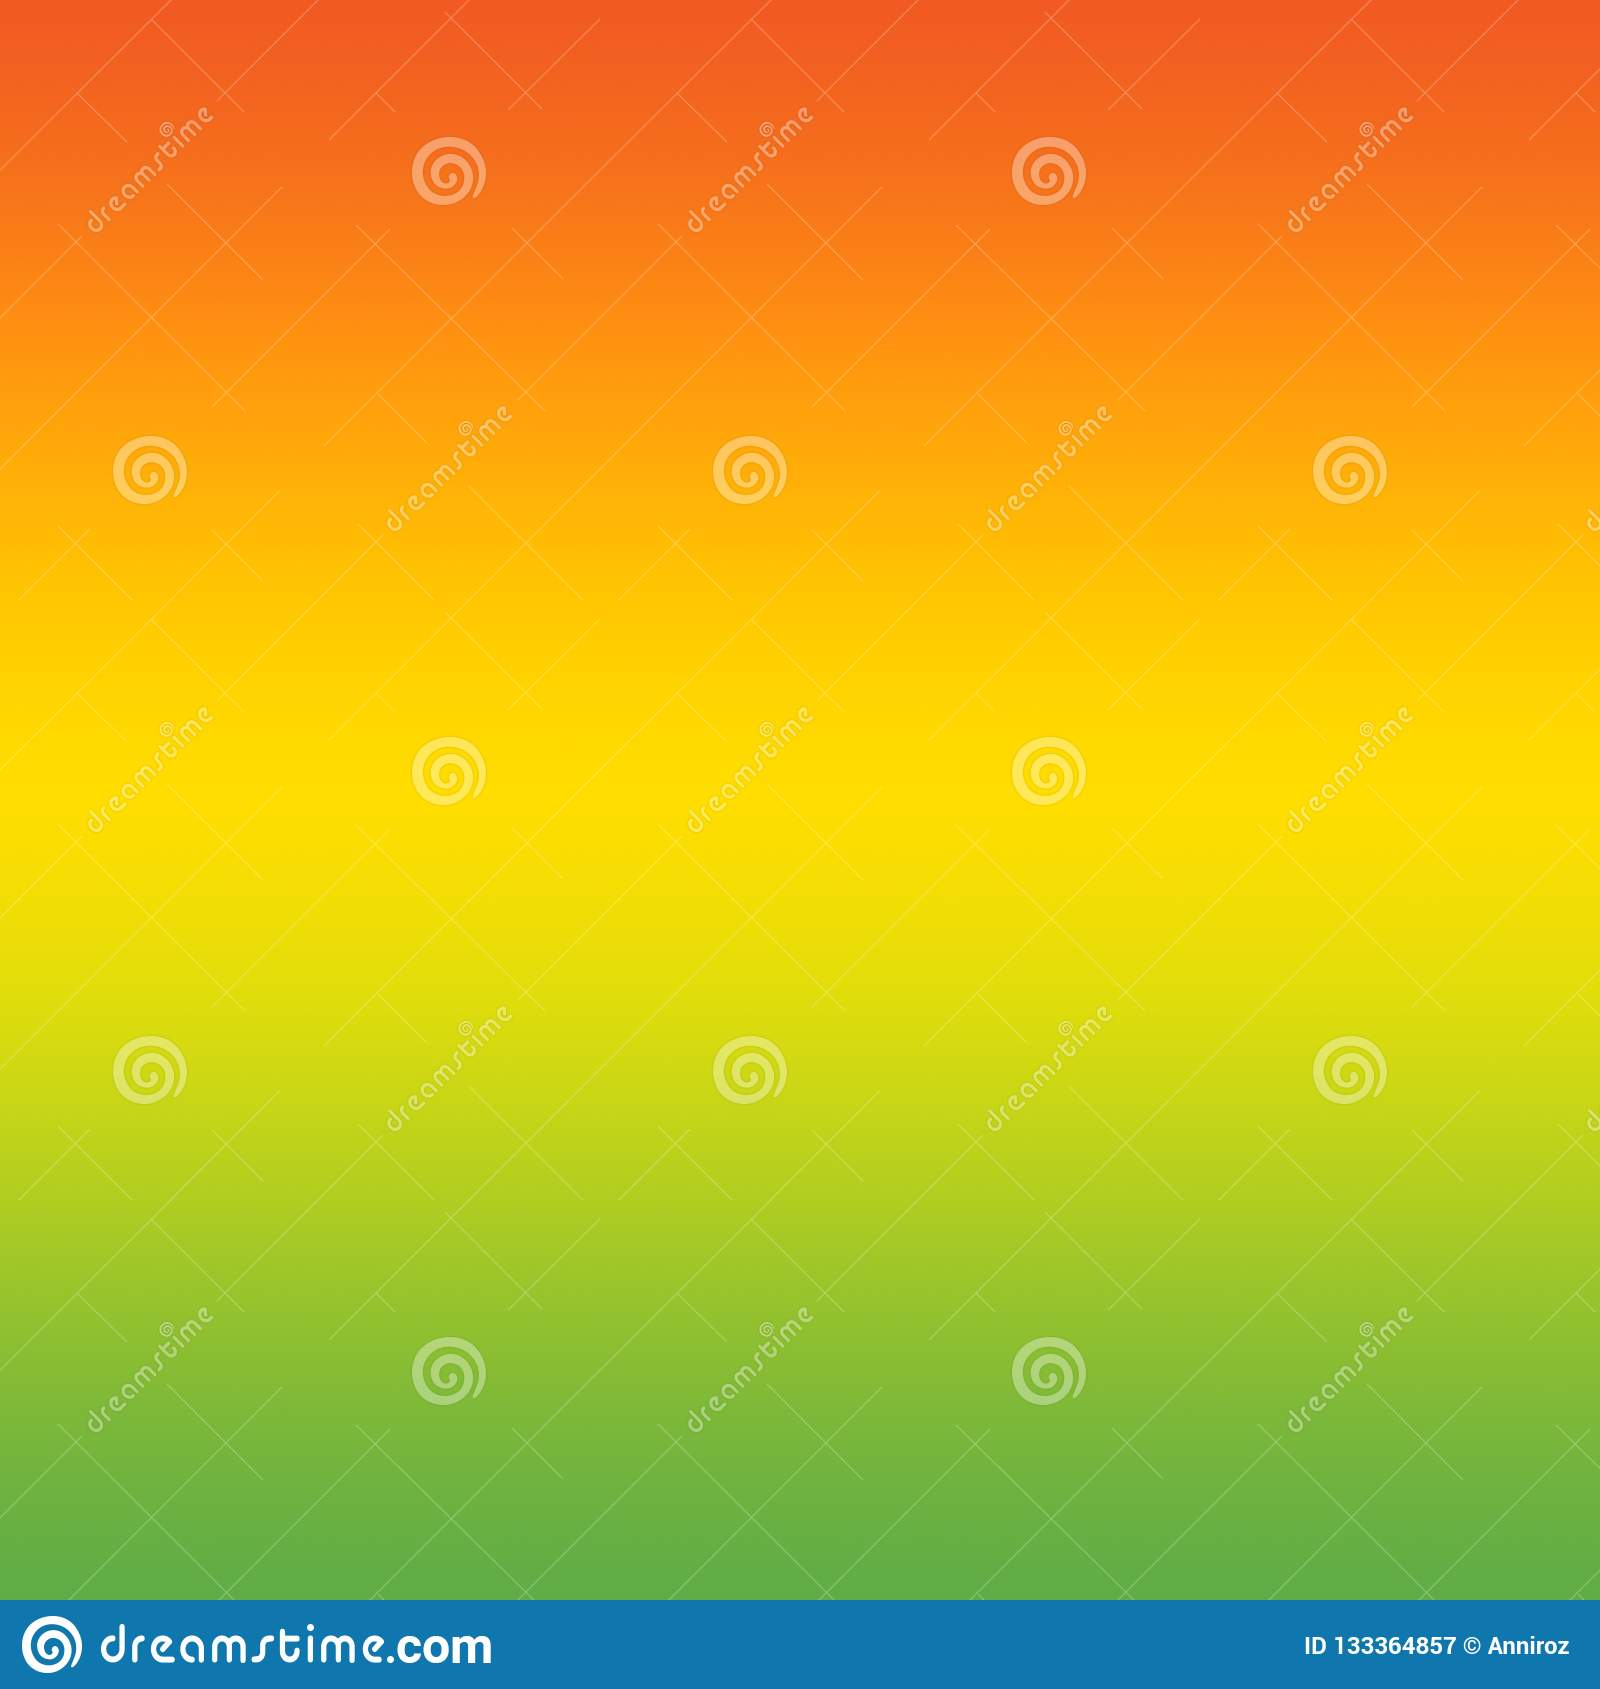 check out 3bf31 f63ea Abstract Multi Color Blurred Gradient Minimal Background Orange yellow green  template for graphic or web design, poster, banner, brochure, card Copy  space